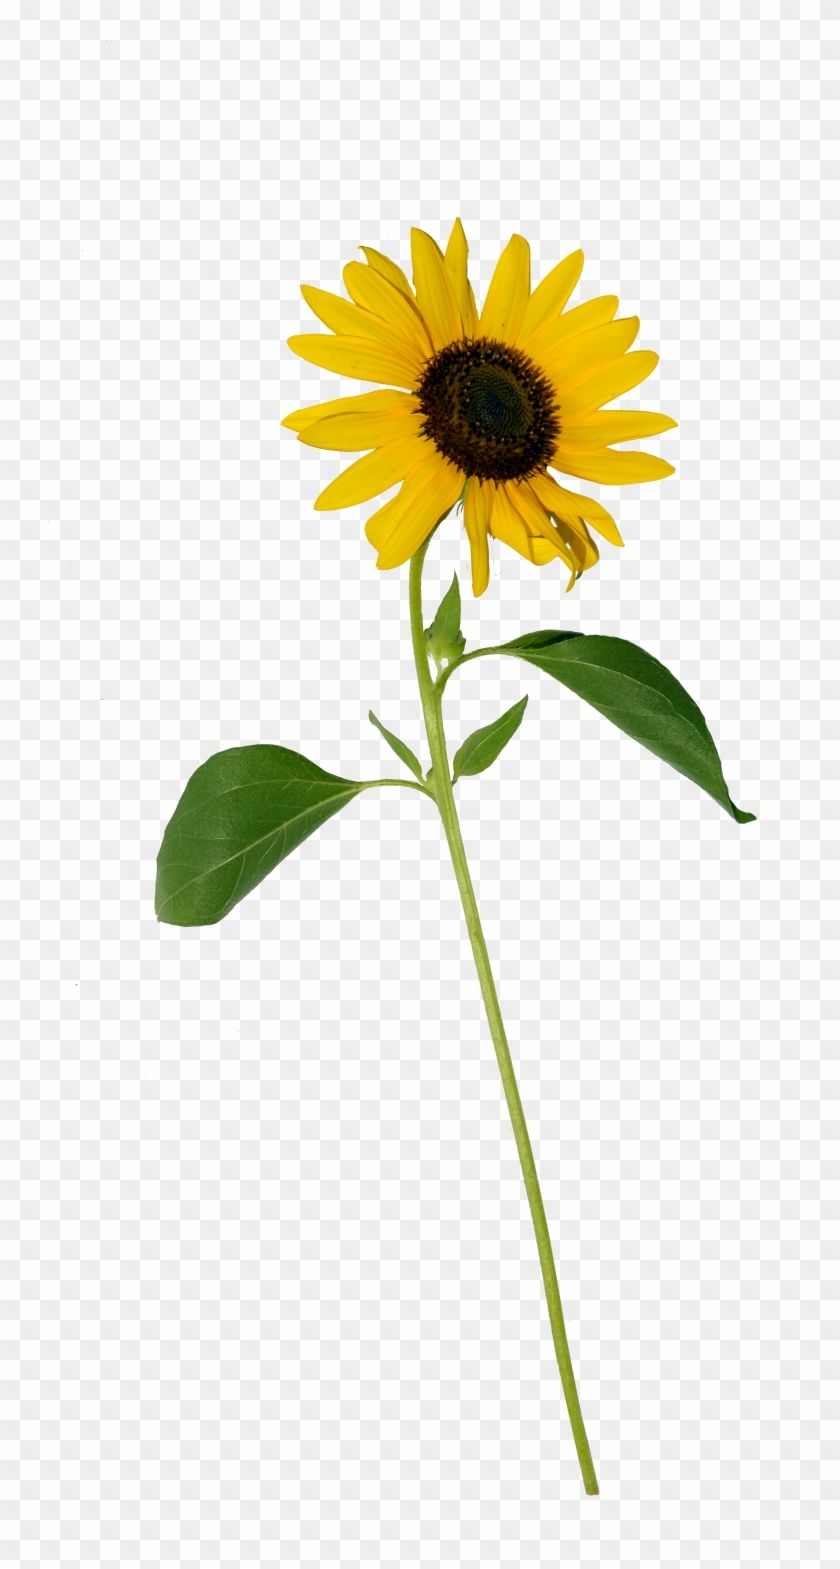 Download And Share Clipart About Sunflower Single Png Single Sunflower Flower Png Find More High Qu Sunflower Flower Blue Flower Pictures Yellow Rose Flower